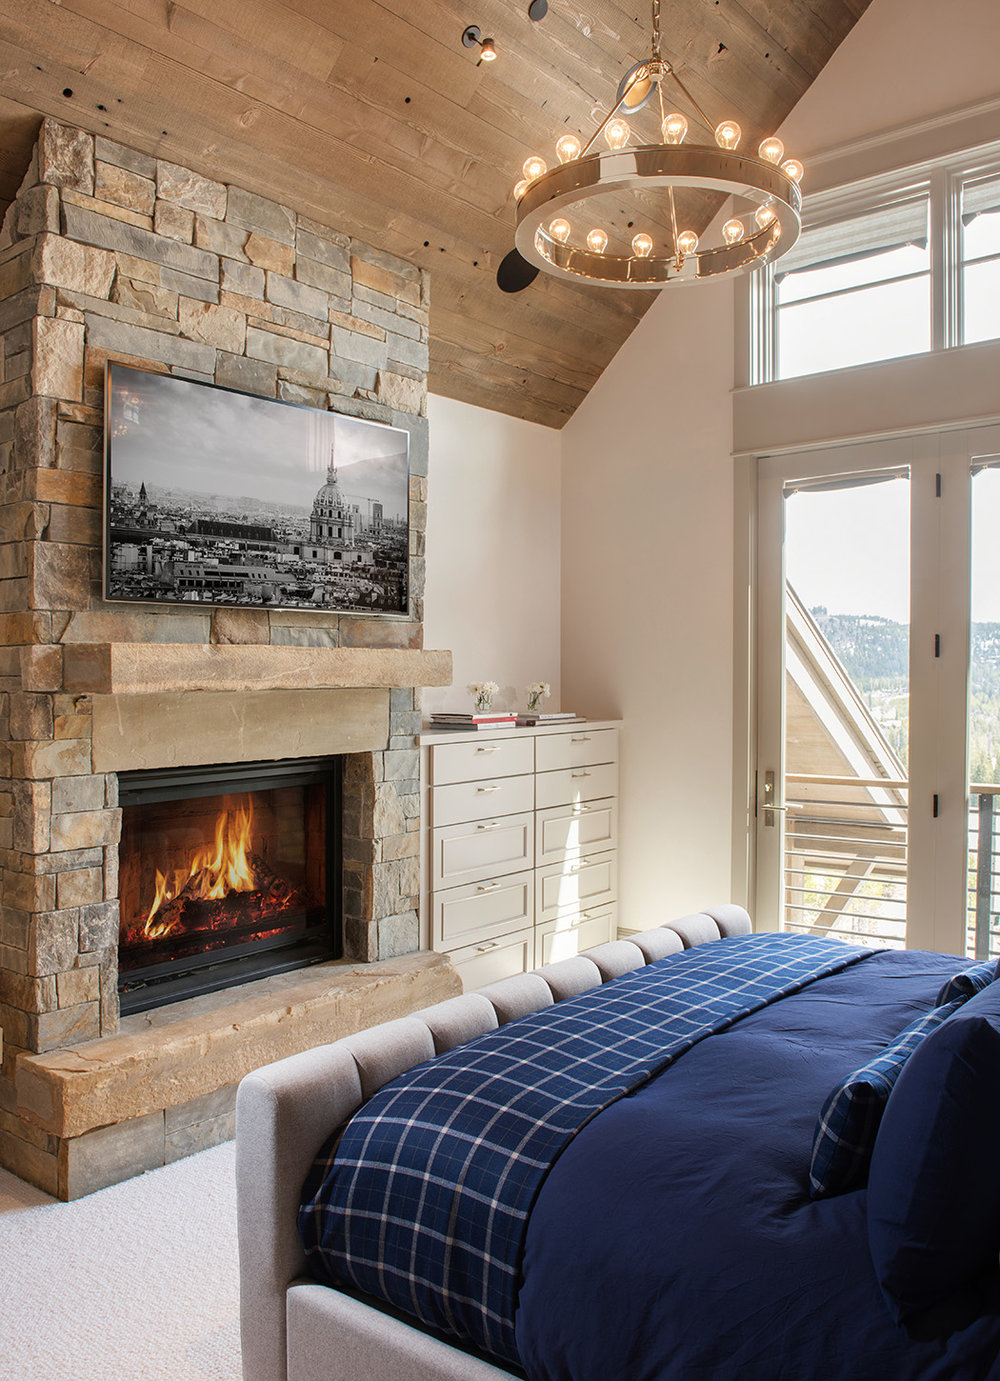 Who doesn't love a fireplace in their master bedroom?  The walk out deck is a nice addition too!  Architect -  Locati Architects